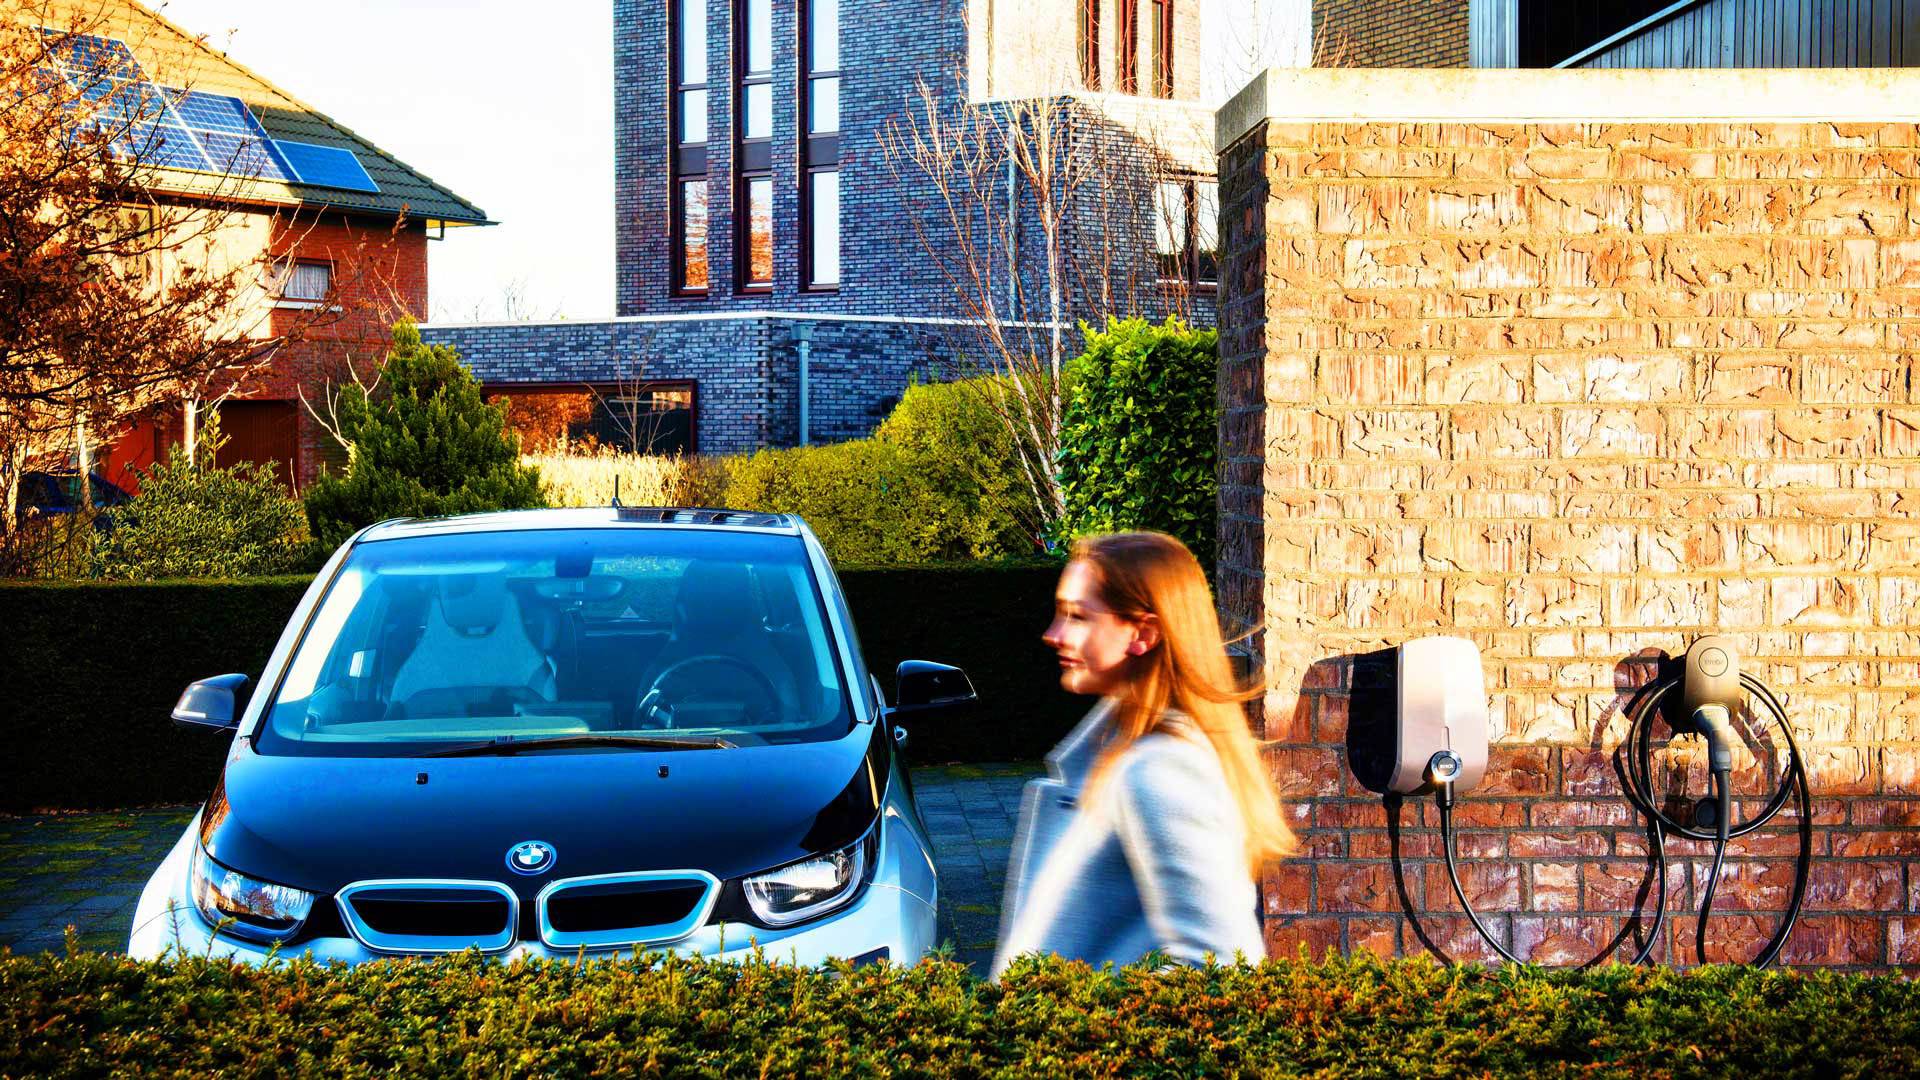 How Do I Apply for the Electric Vehicle Home Charger Grant?